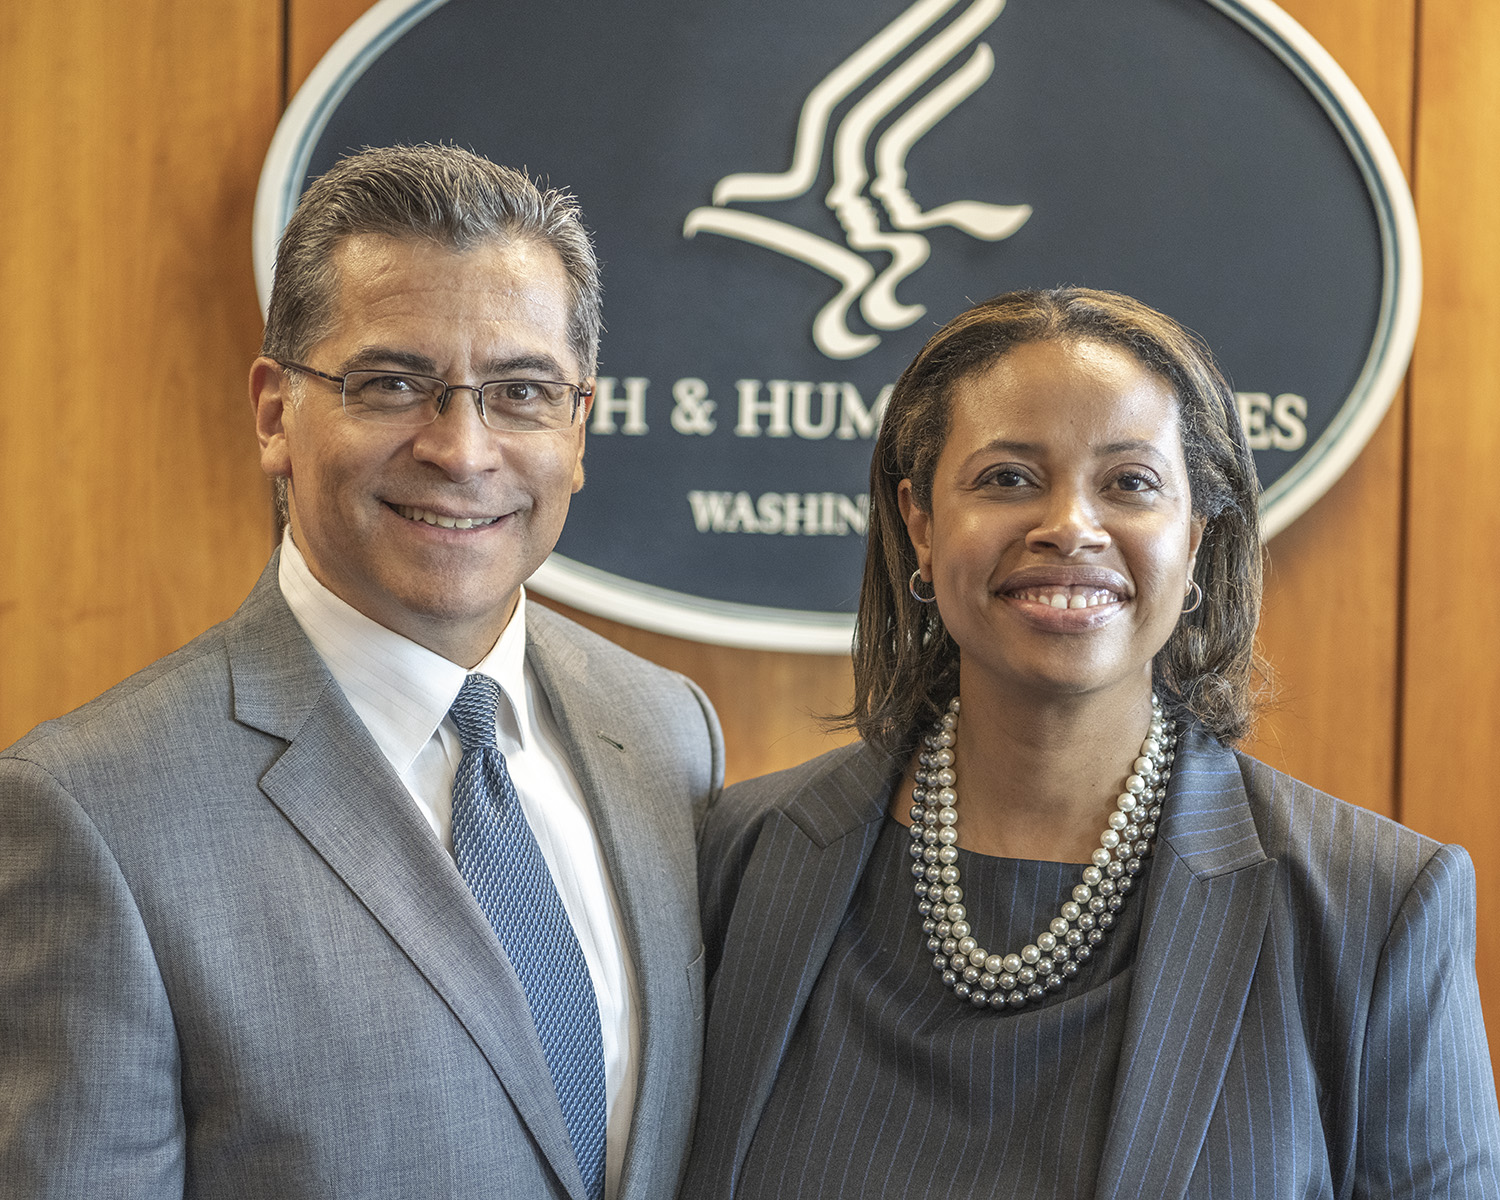 HHS rule bolsters health equity, Brooks-LaSure tells state rulemakers